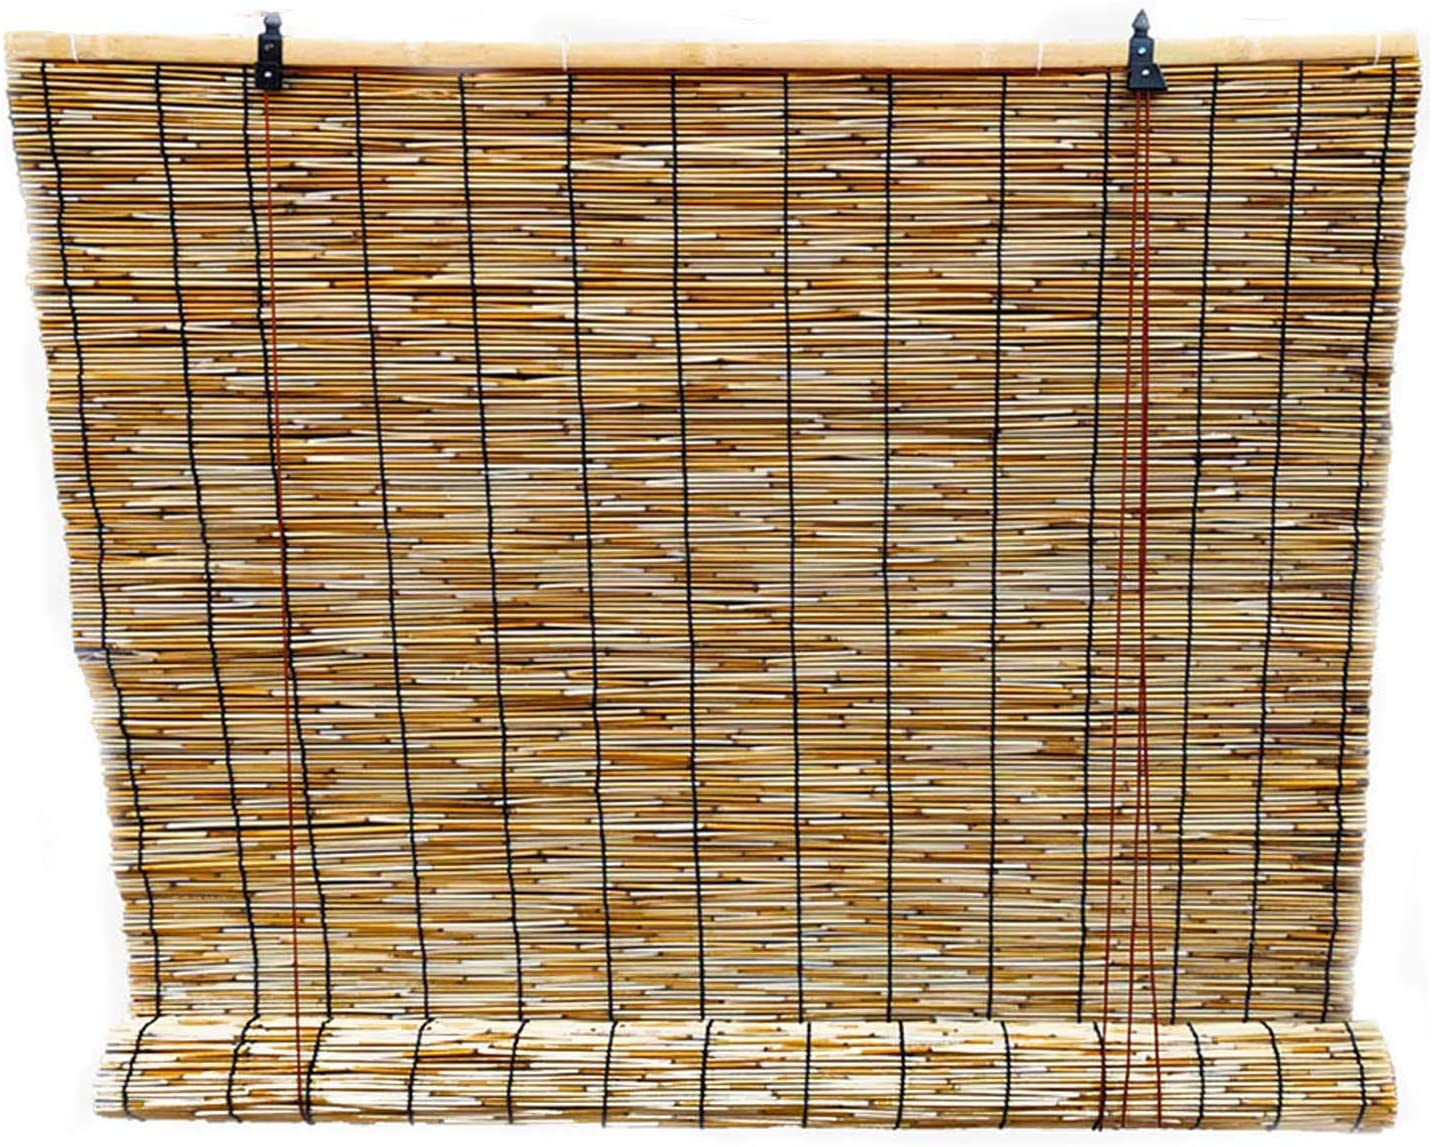 HJRD Natural Reed Curtain Vintage Roller Limited time cheap sale Bamboo Curtains Max 61% OFF Blind